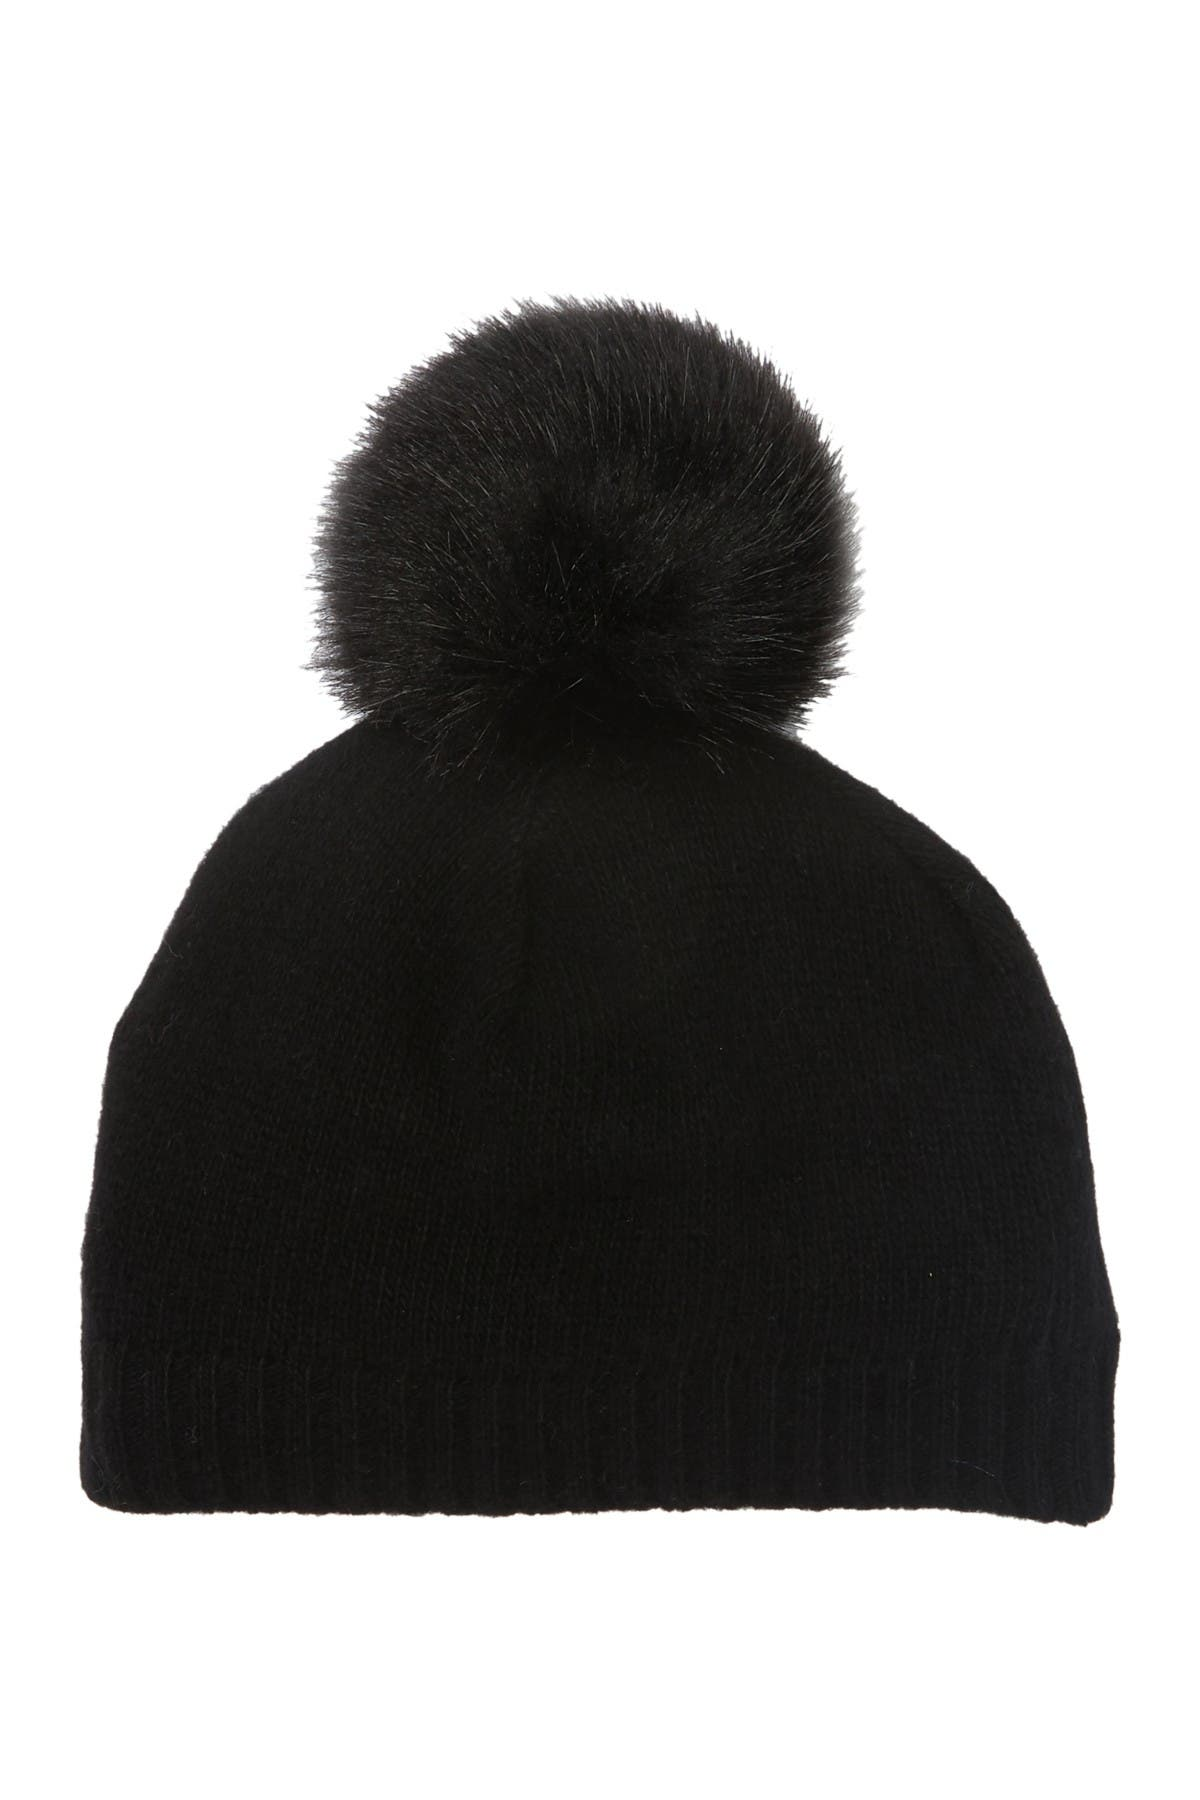 Warm and cozy! Cashmere baby hat with large fox Pompom